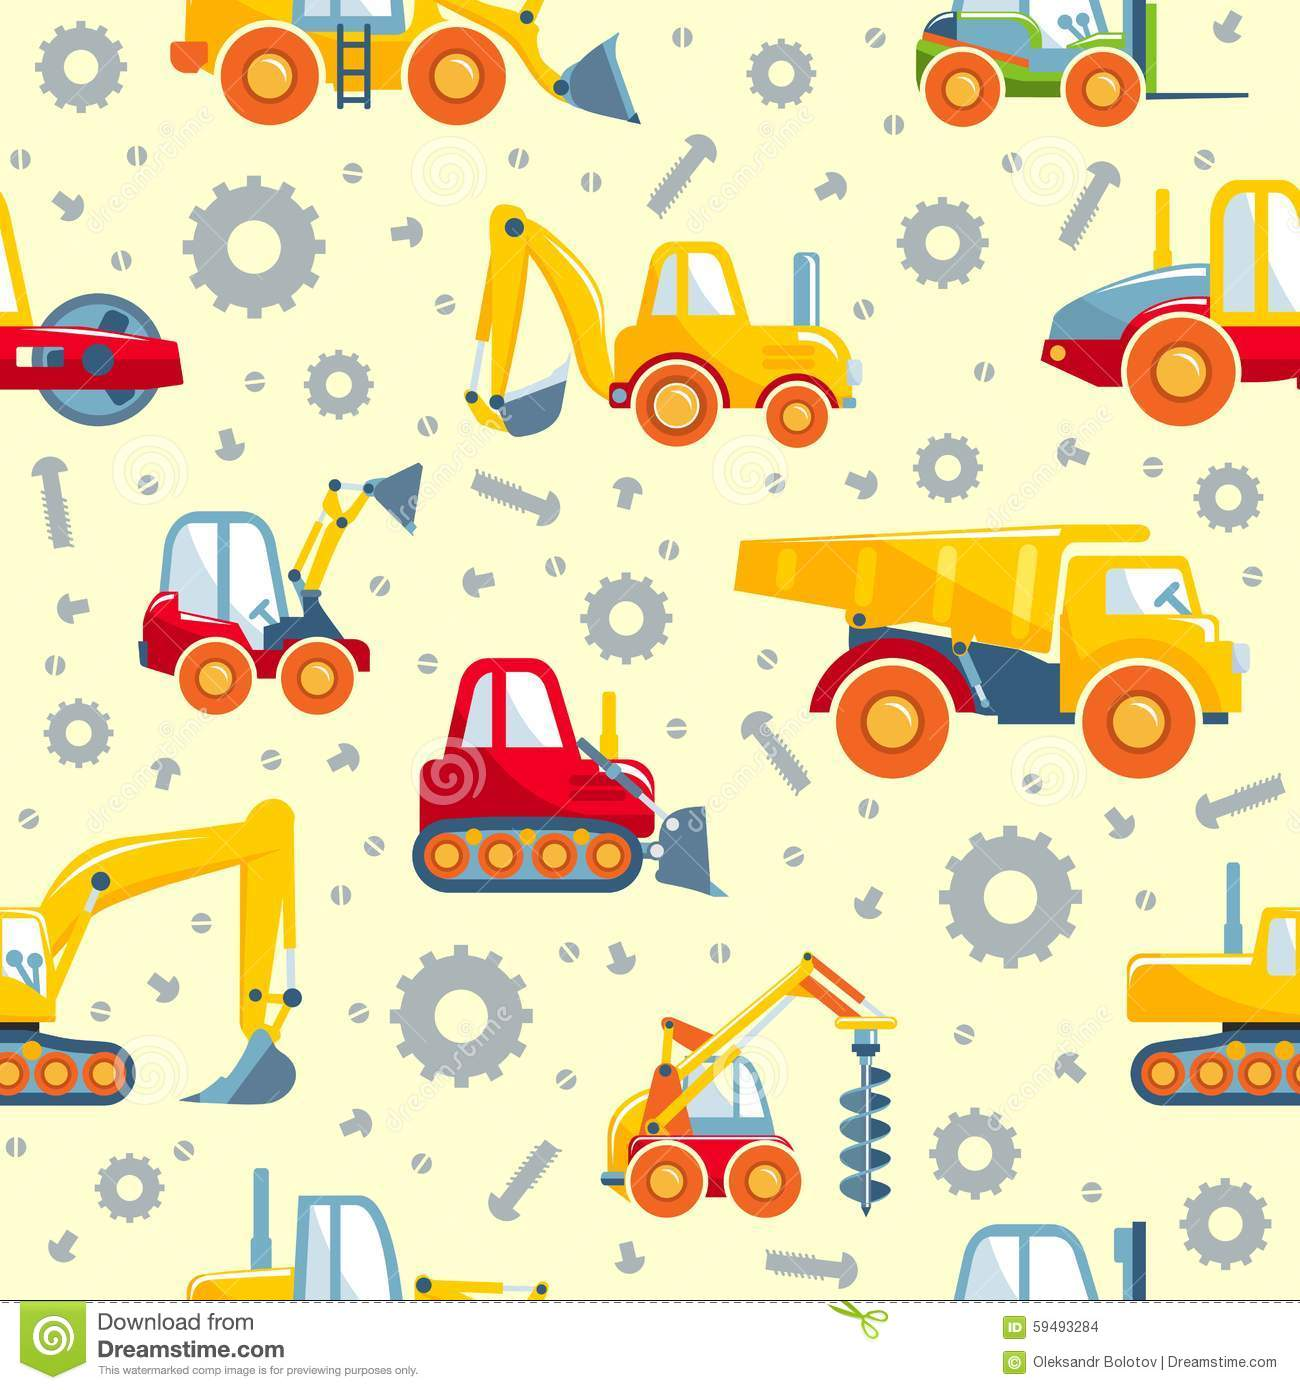 sand making machine equipment development trend Industry estimates forecast double digit growth of agvs through 2020 this  educational  32:59 ease of mhi presents: match making - tasks, people and  tools  sponsored by murata machinery usa, inc  26:52 why the fork truck  free movement is the north american 2017 material handling trend.